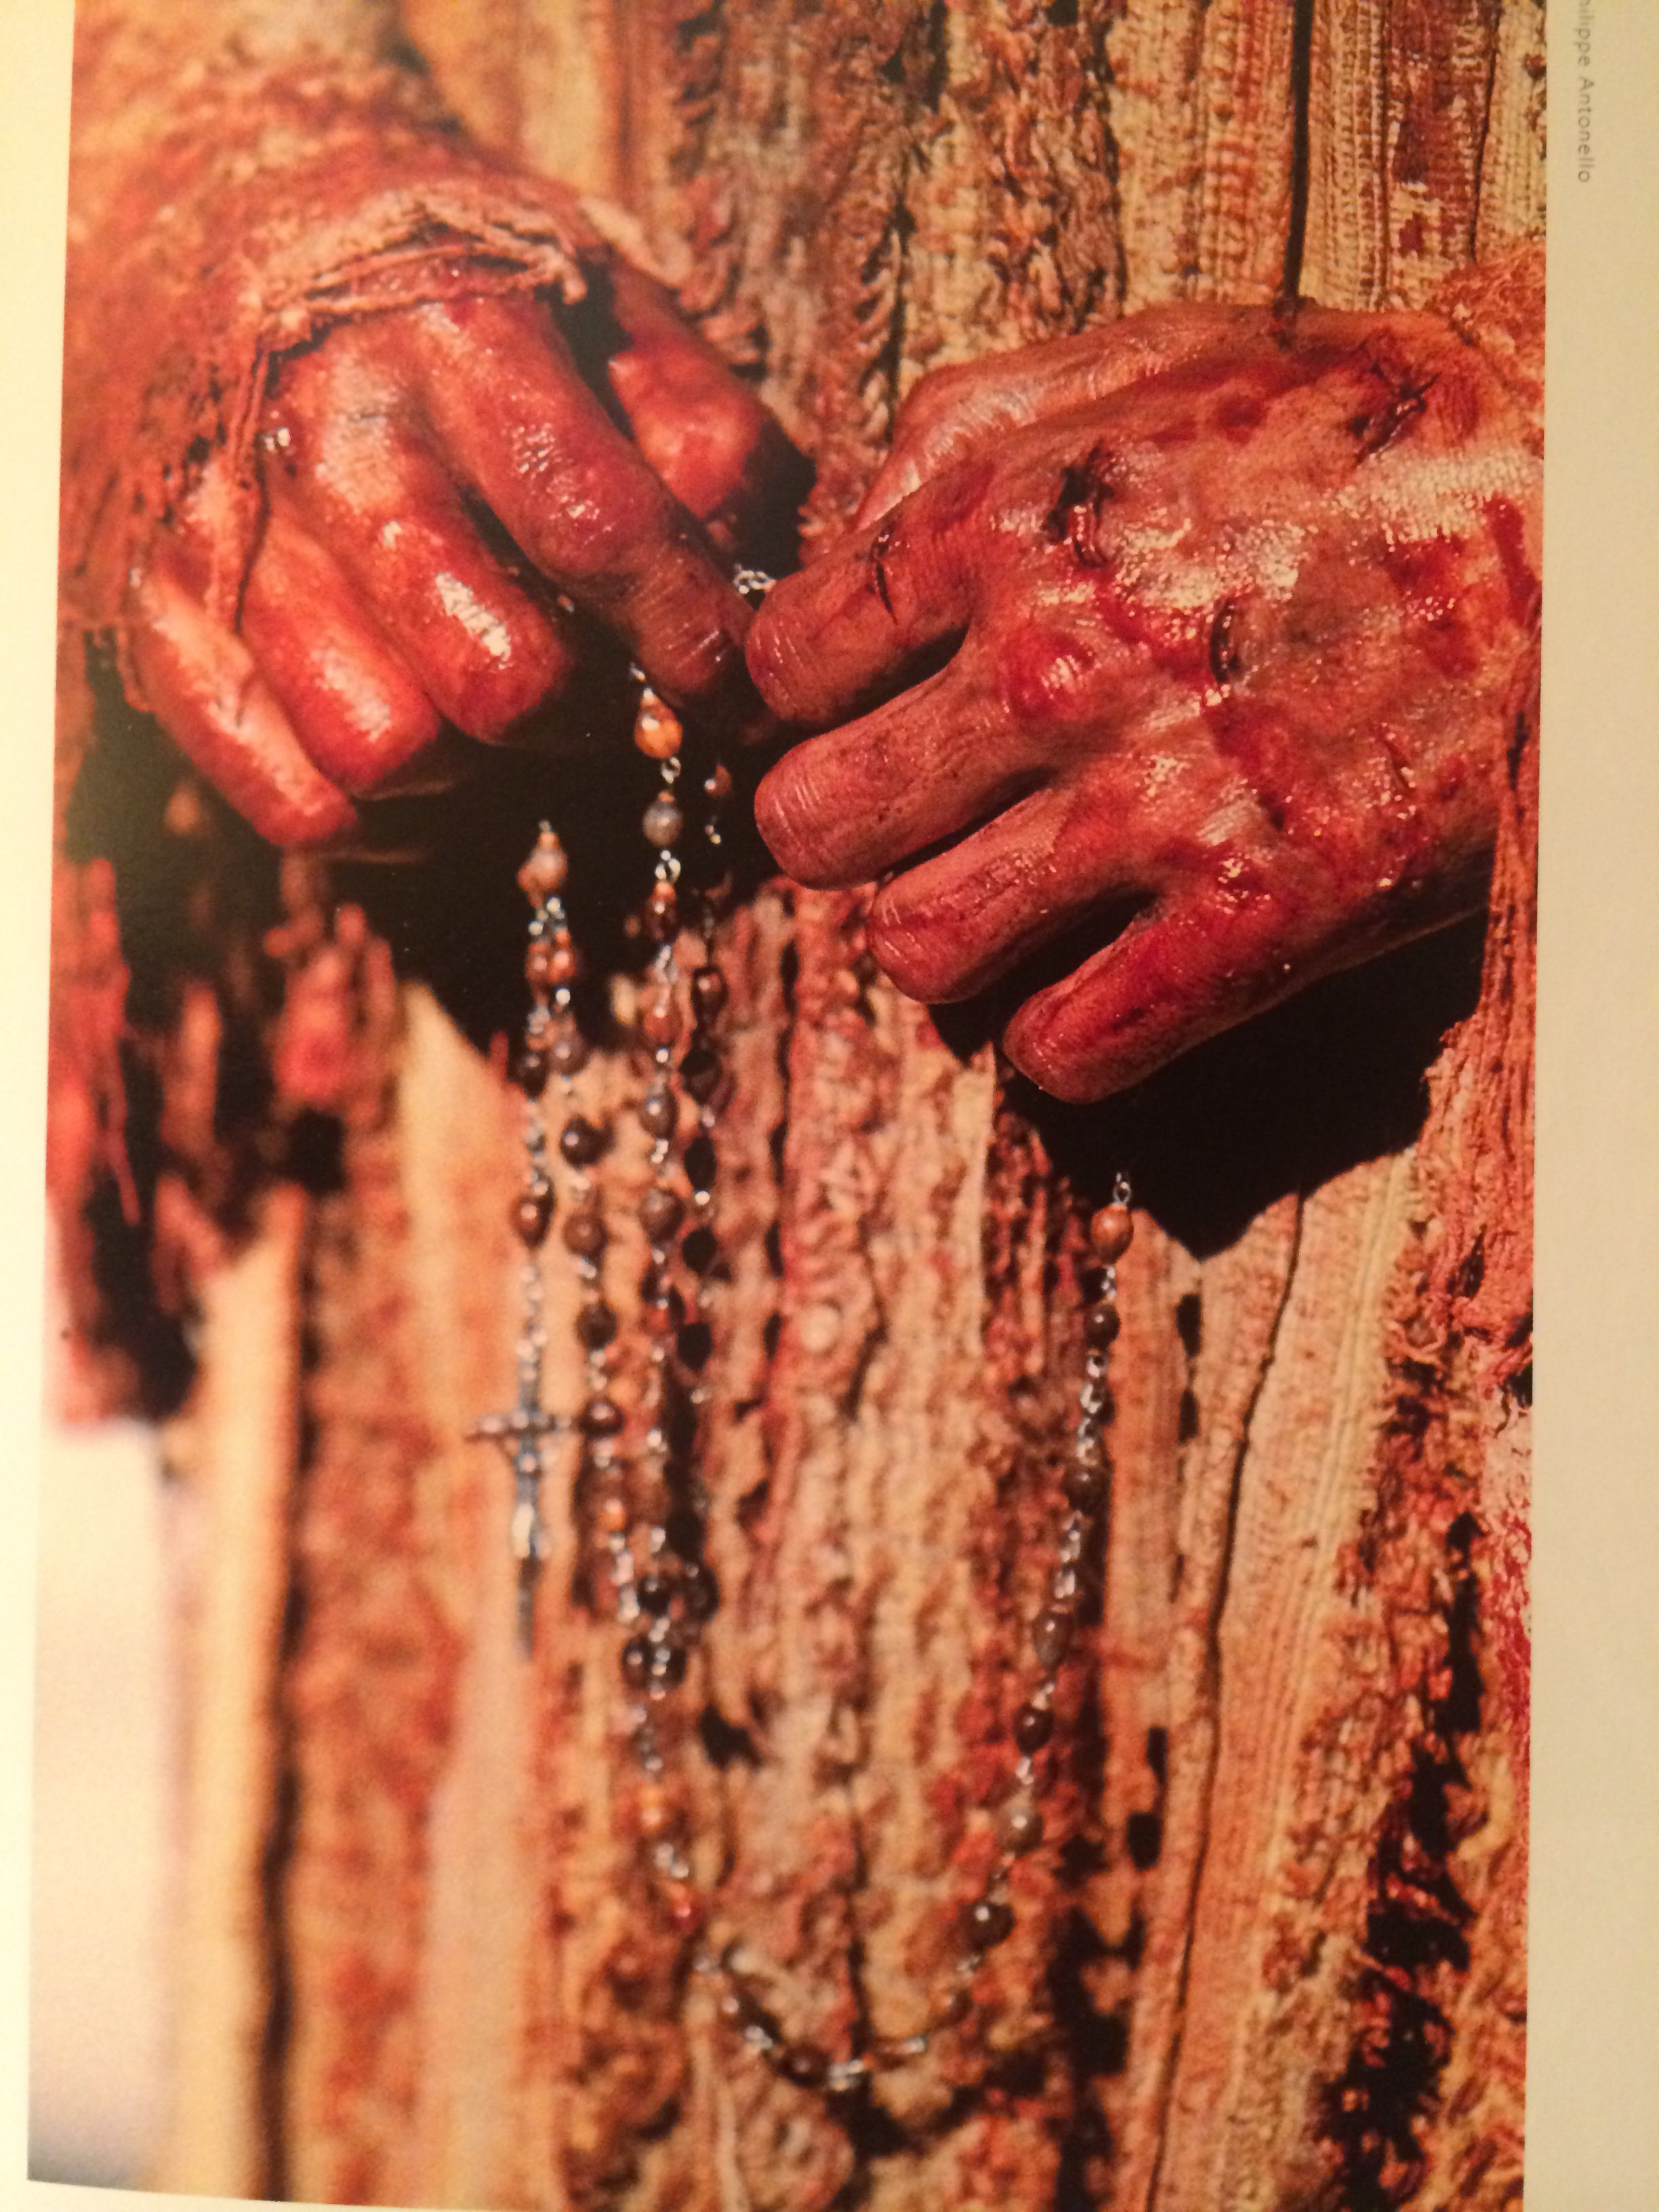 Hands of Jim Caviezel --Jesus--praying the rosary while filming The Passion